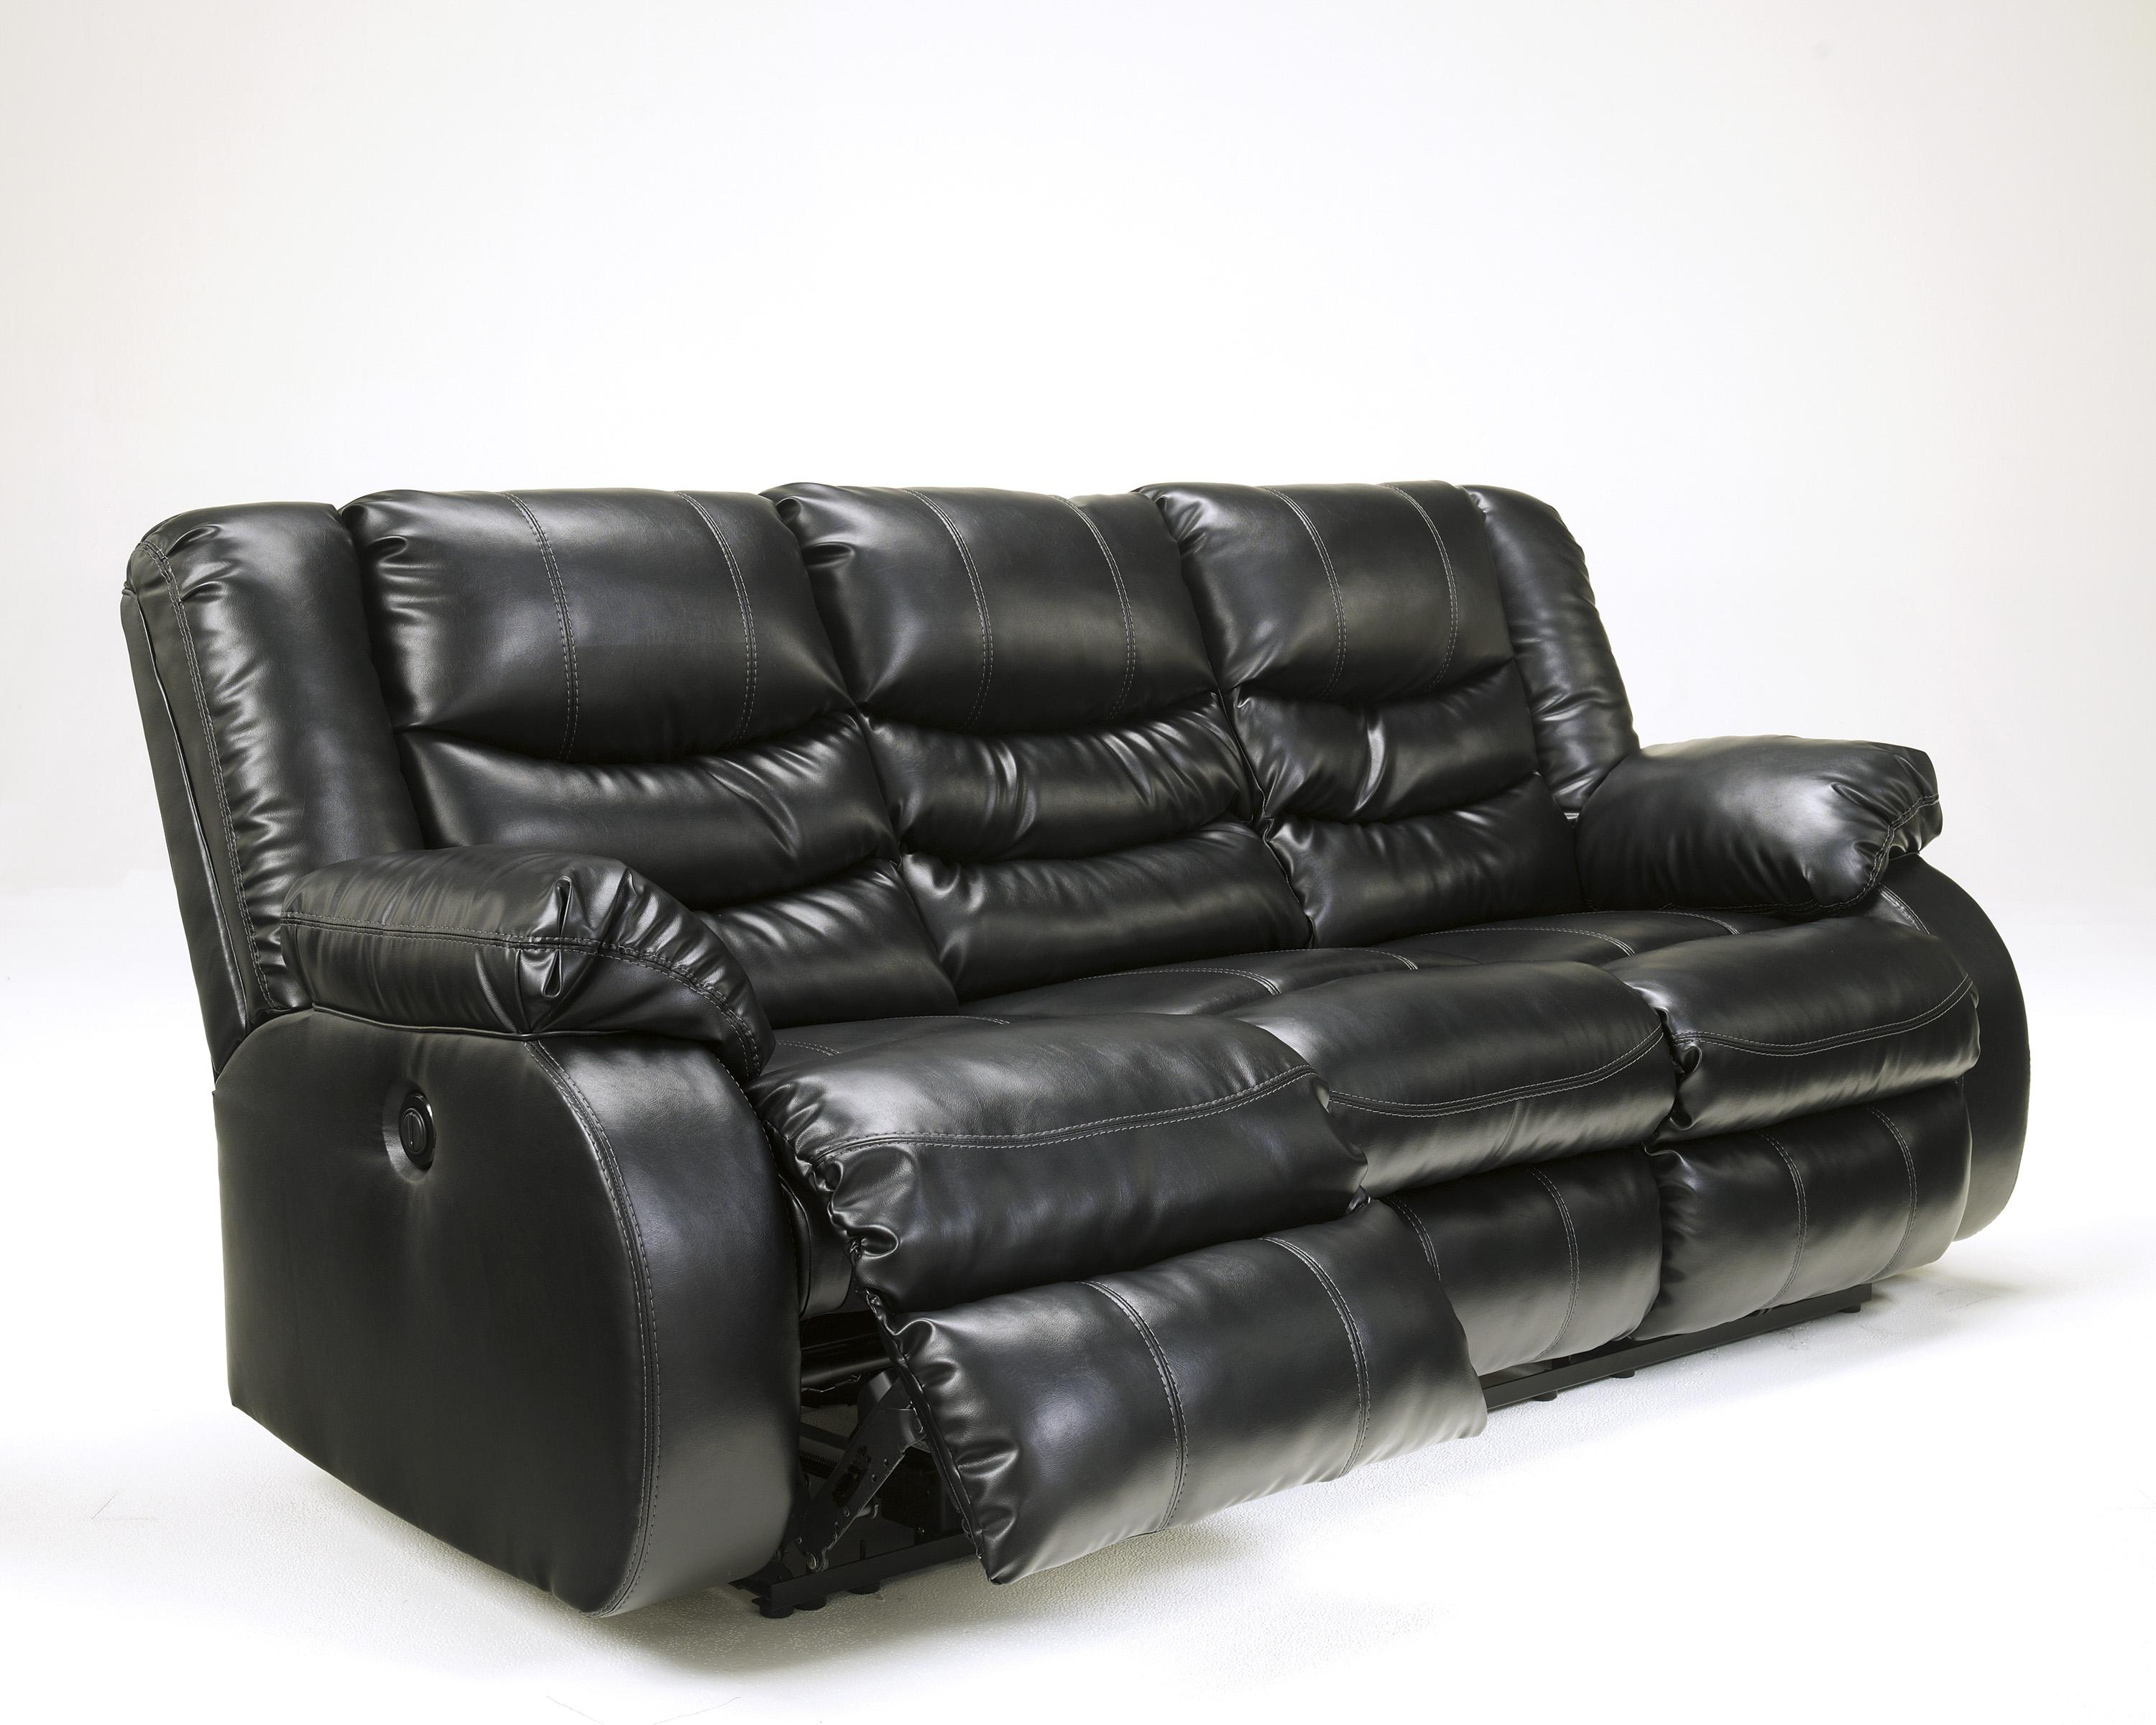 Sofa Set Meaning In Urdu Benchcraft Linebacker Durablend Black Contemporary